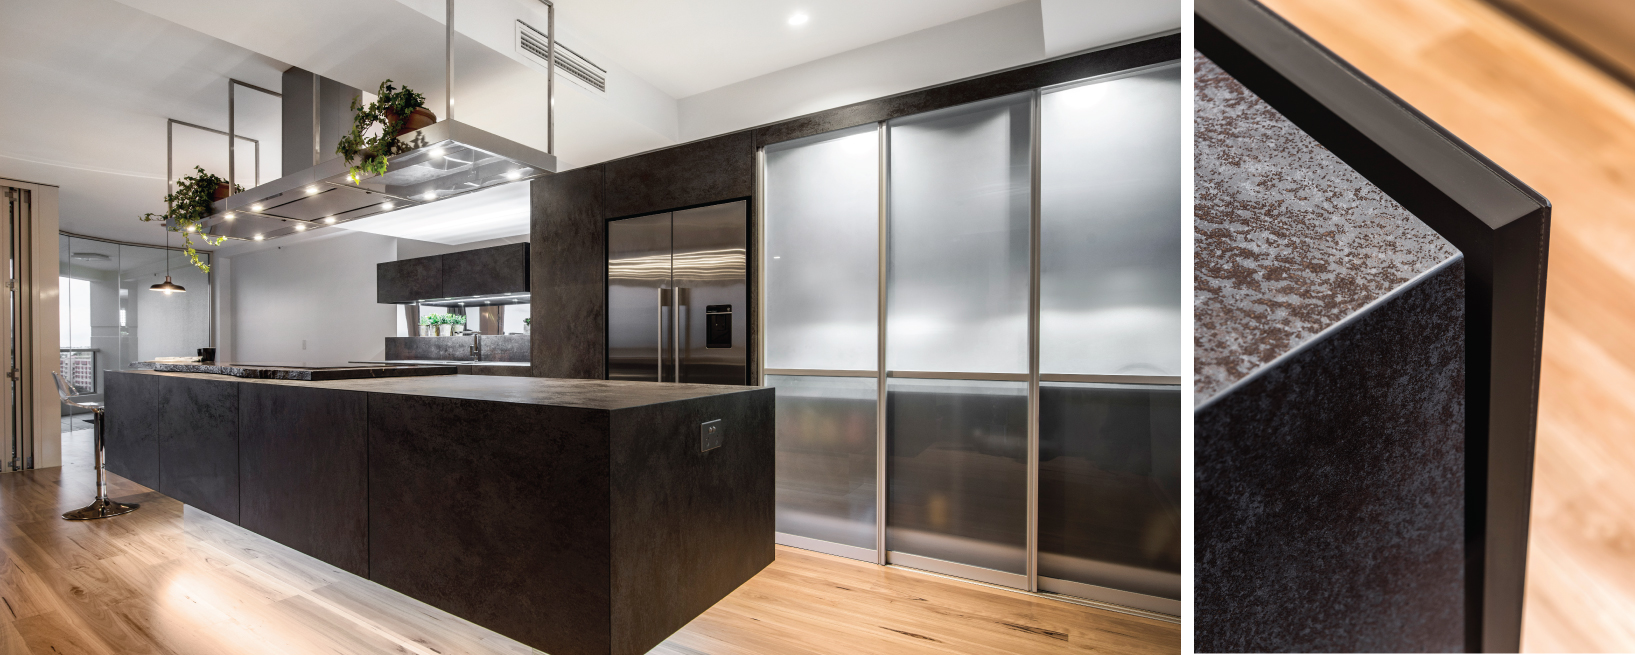 Australian Kitchen Design of The Year KimDuffin